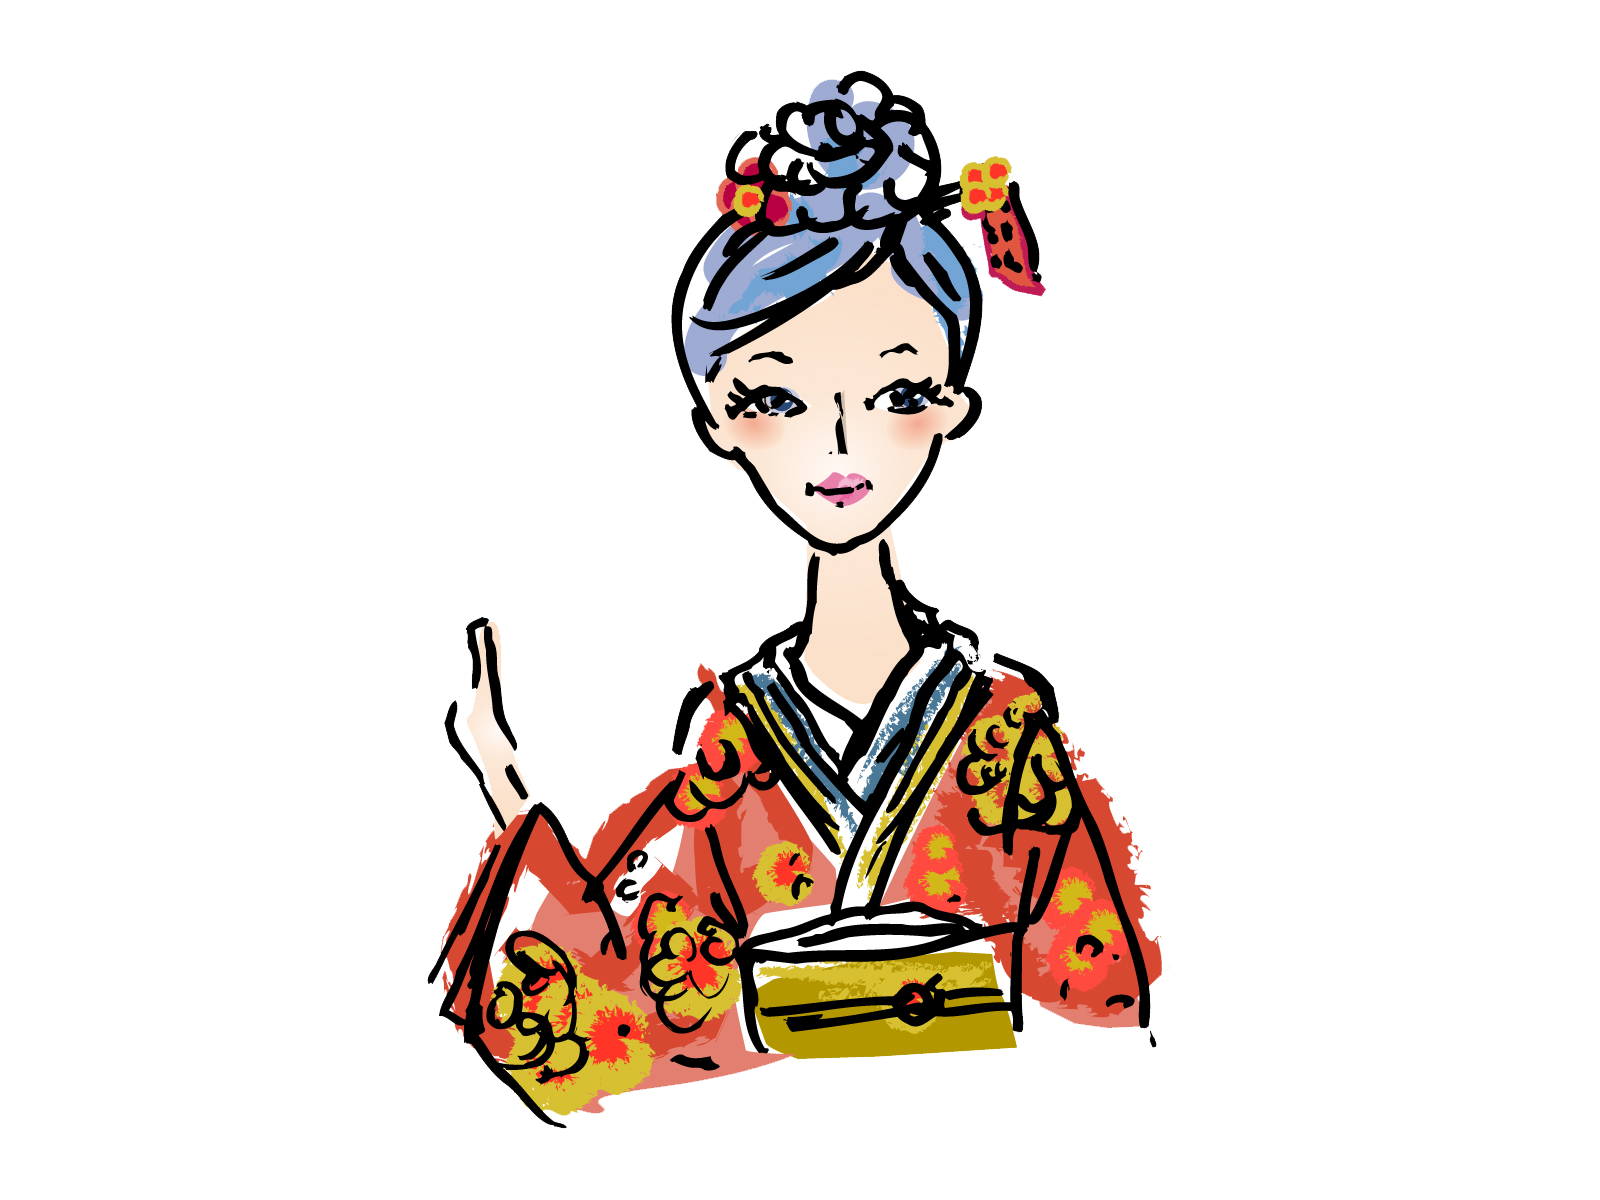 Japanese clipart free download clip art -Japanese clipart free download clip art on 5-12